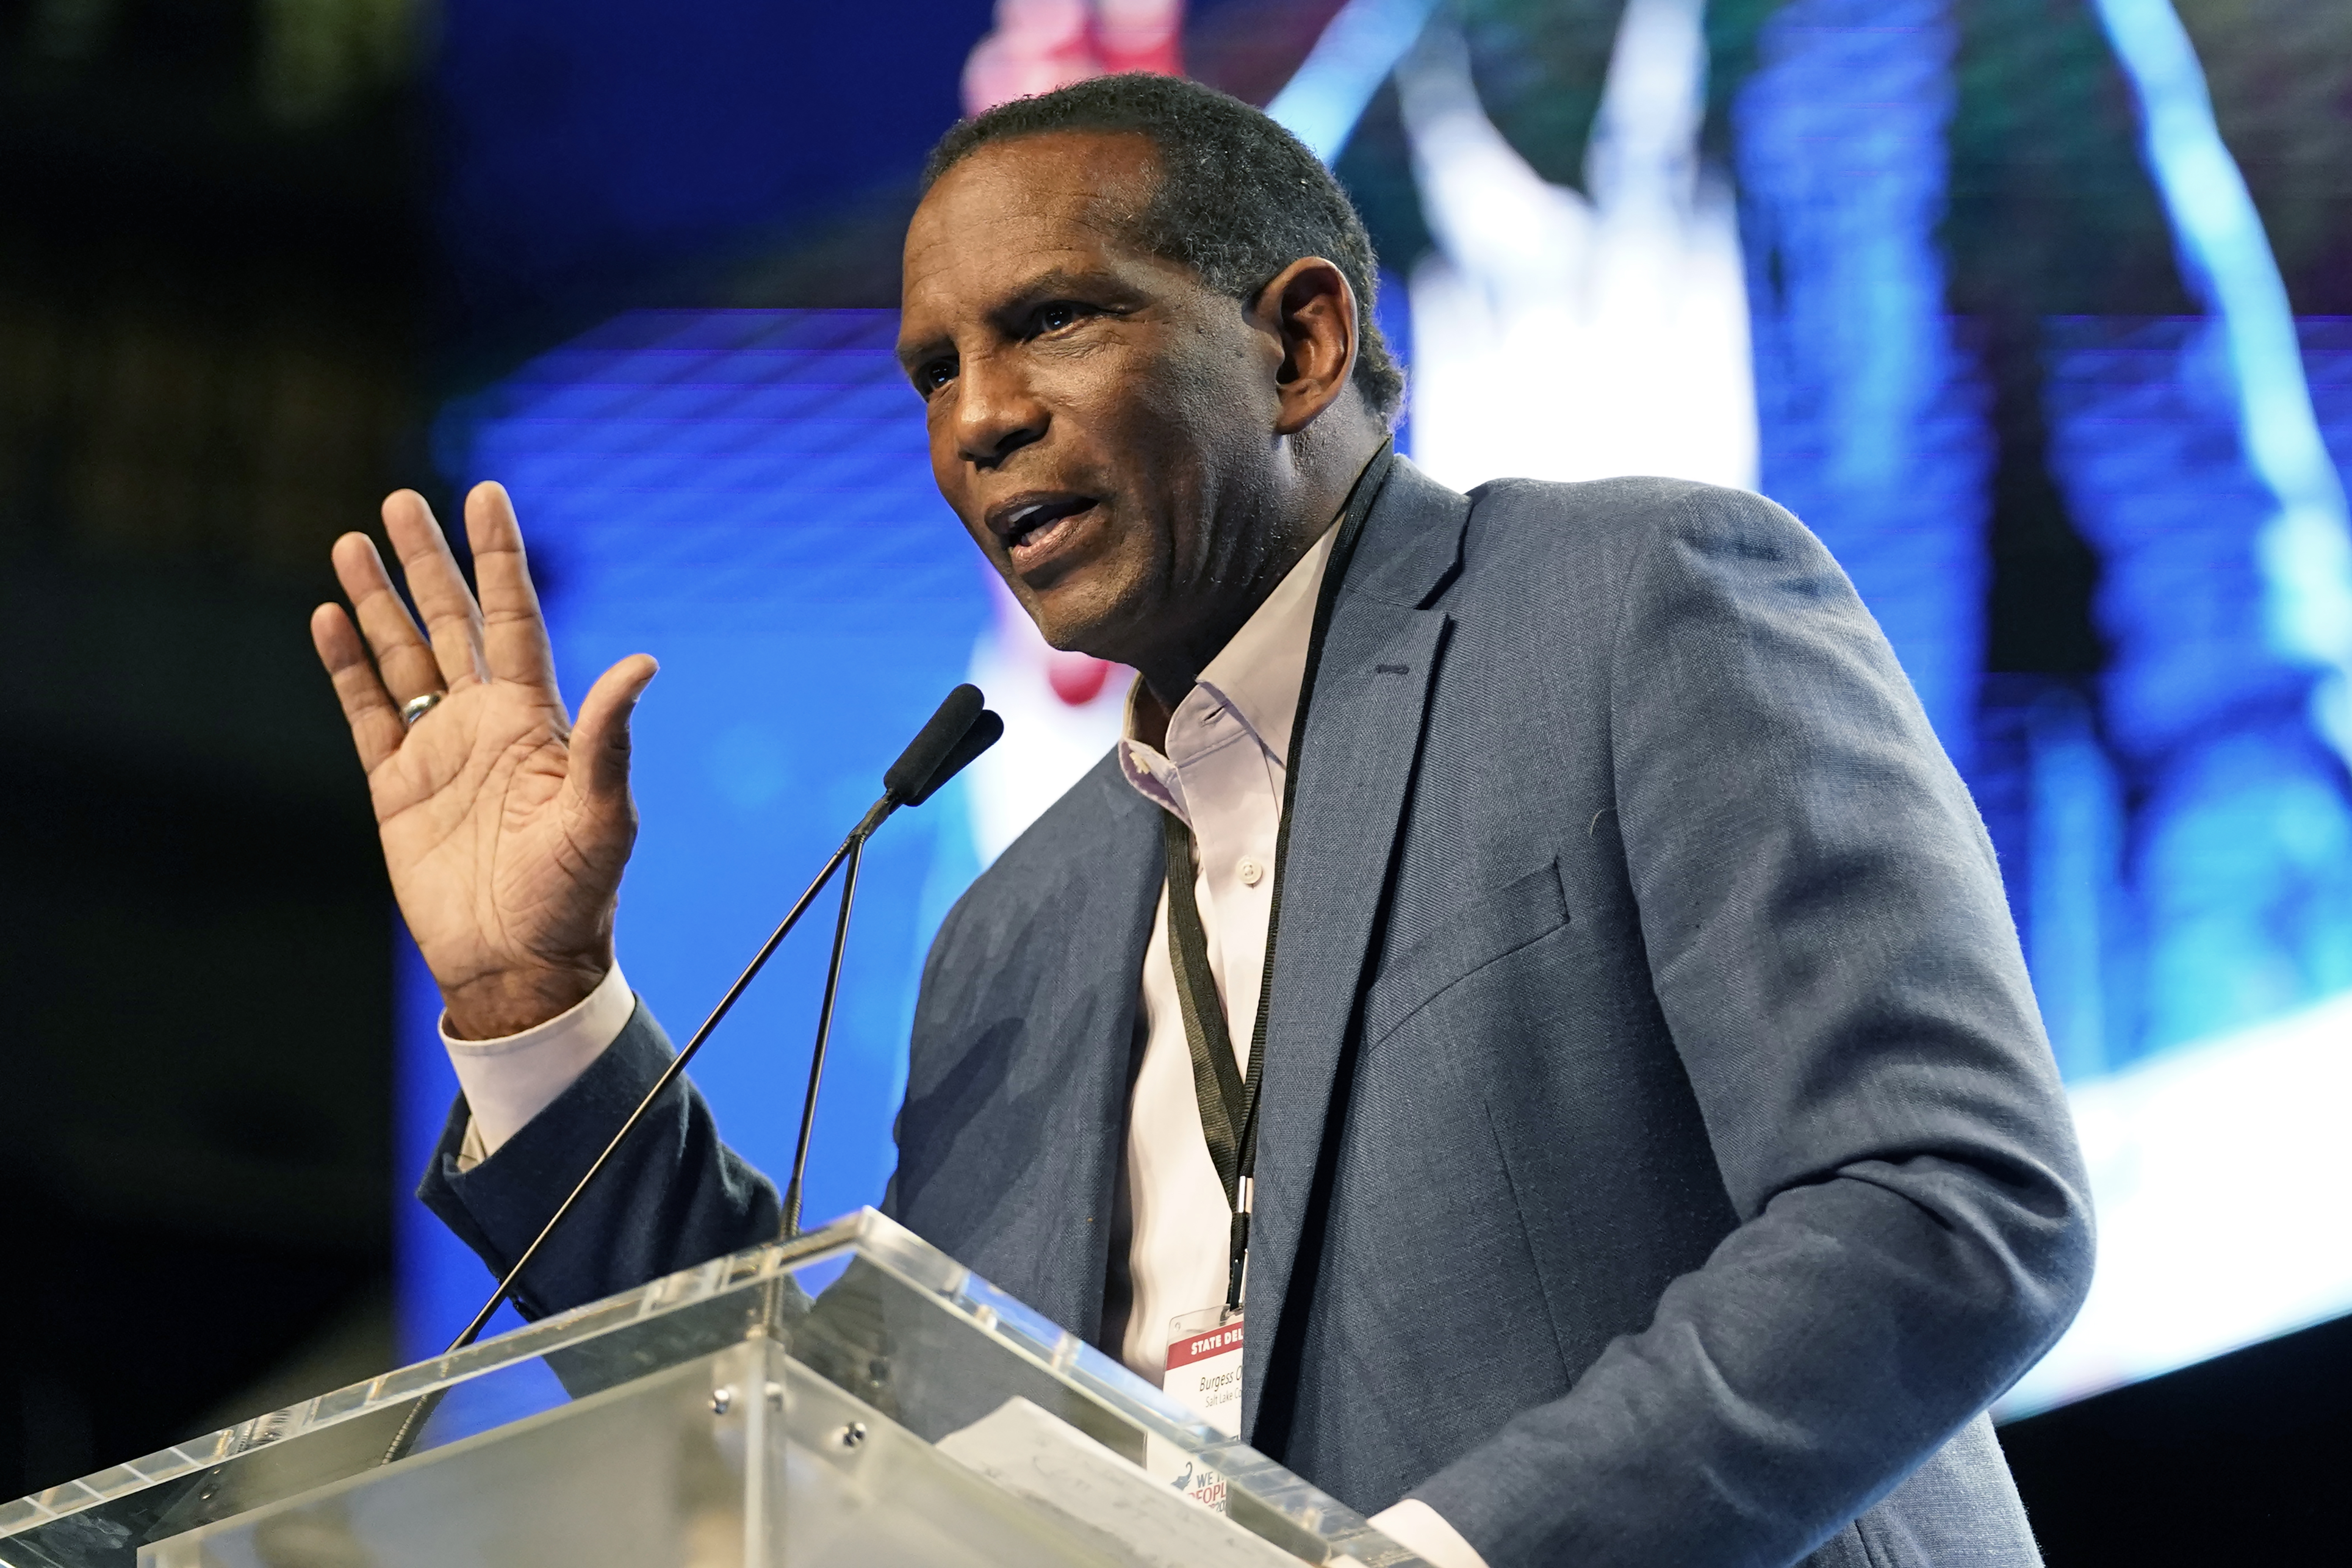 Rep. Burgess Owens addresses delegates attending the Utah Republican Party's 2021 Organizing Convention in West Valley City.